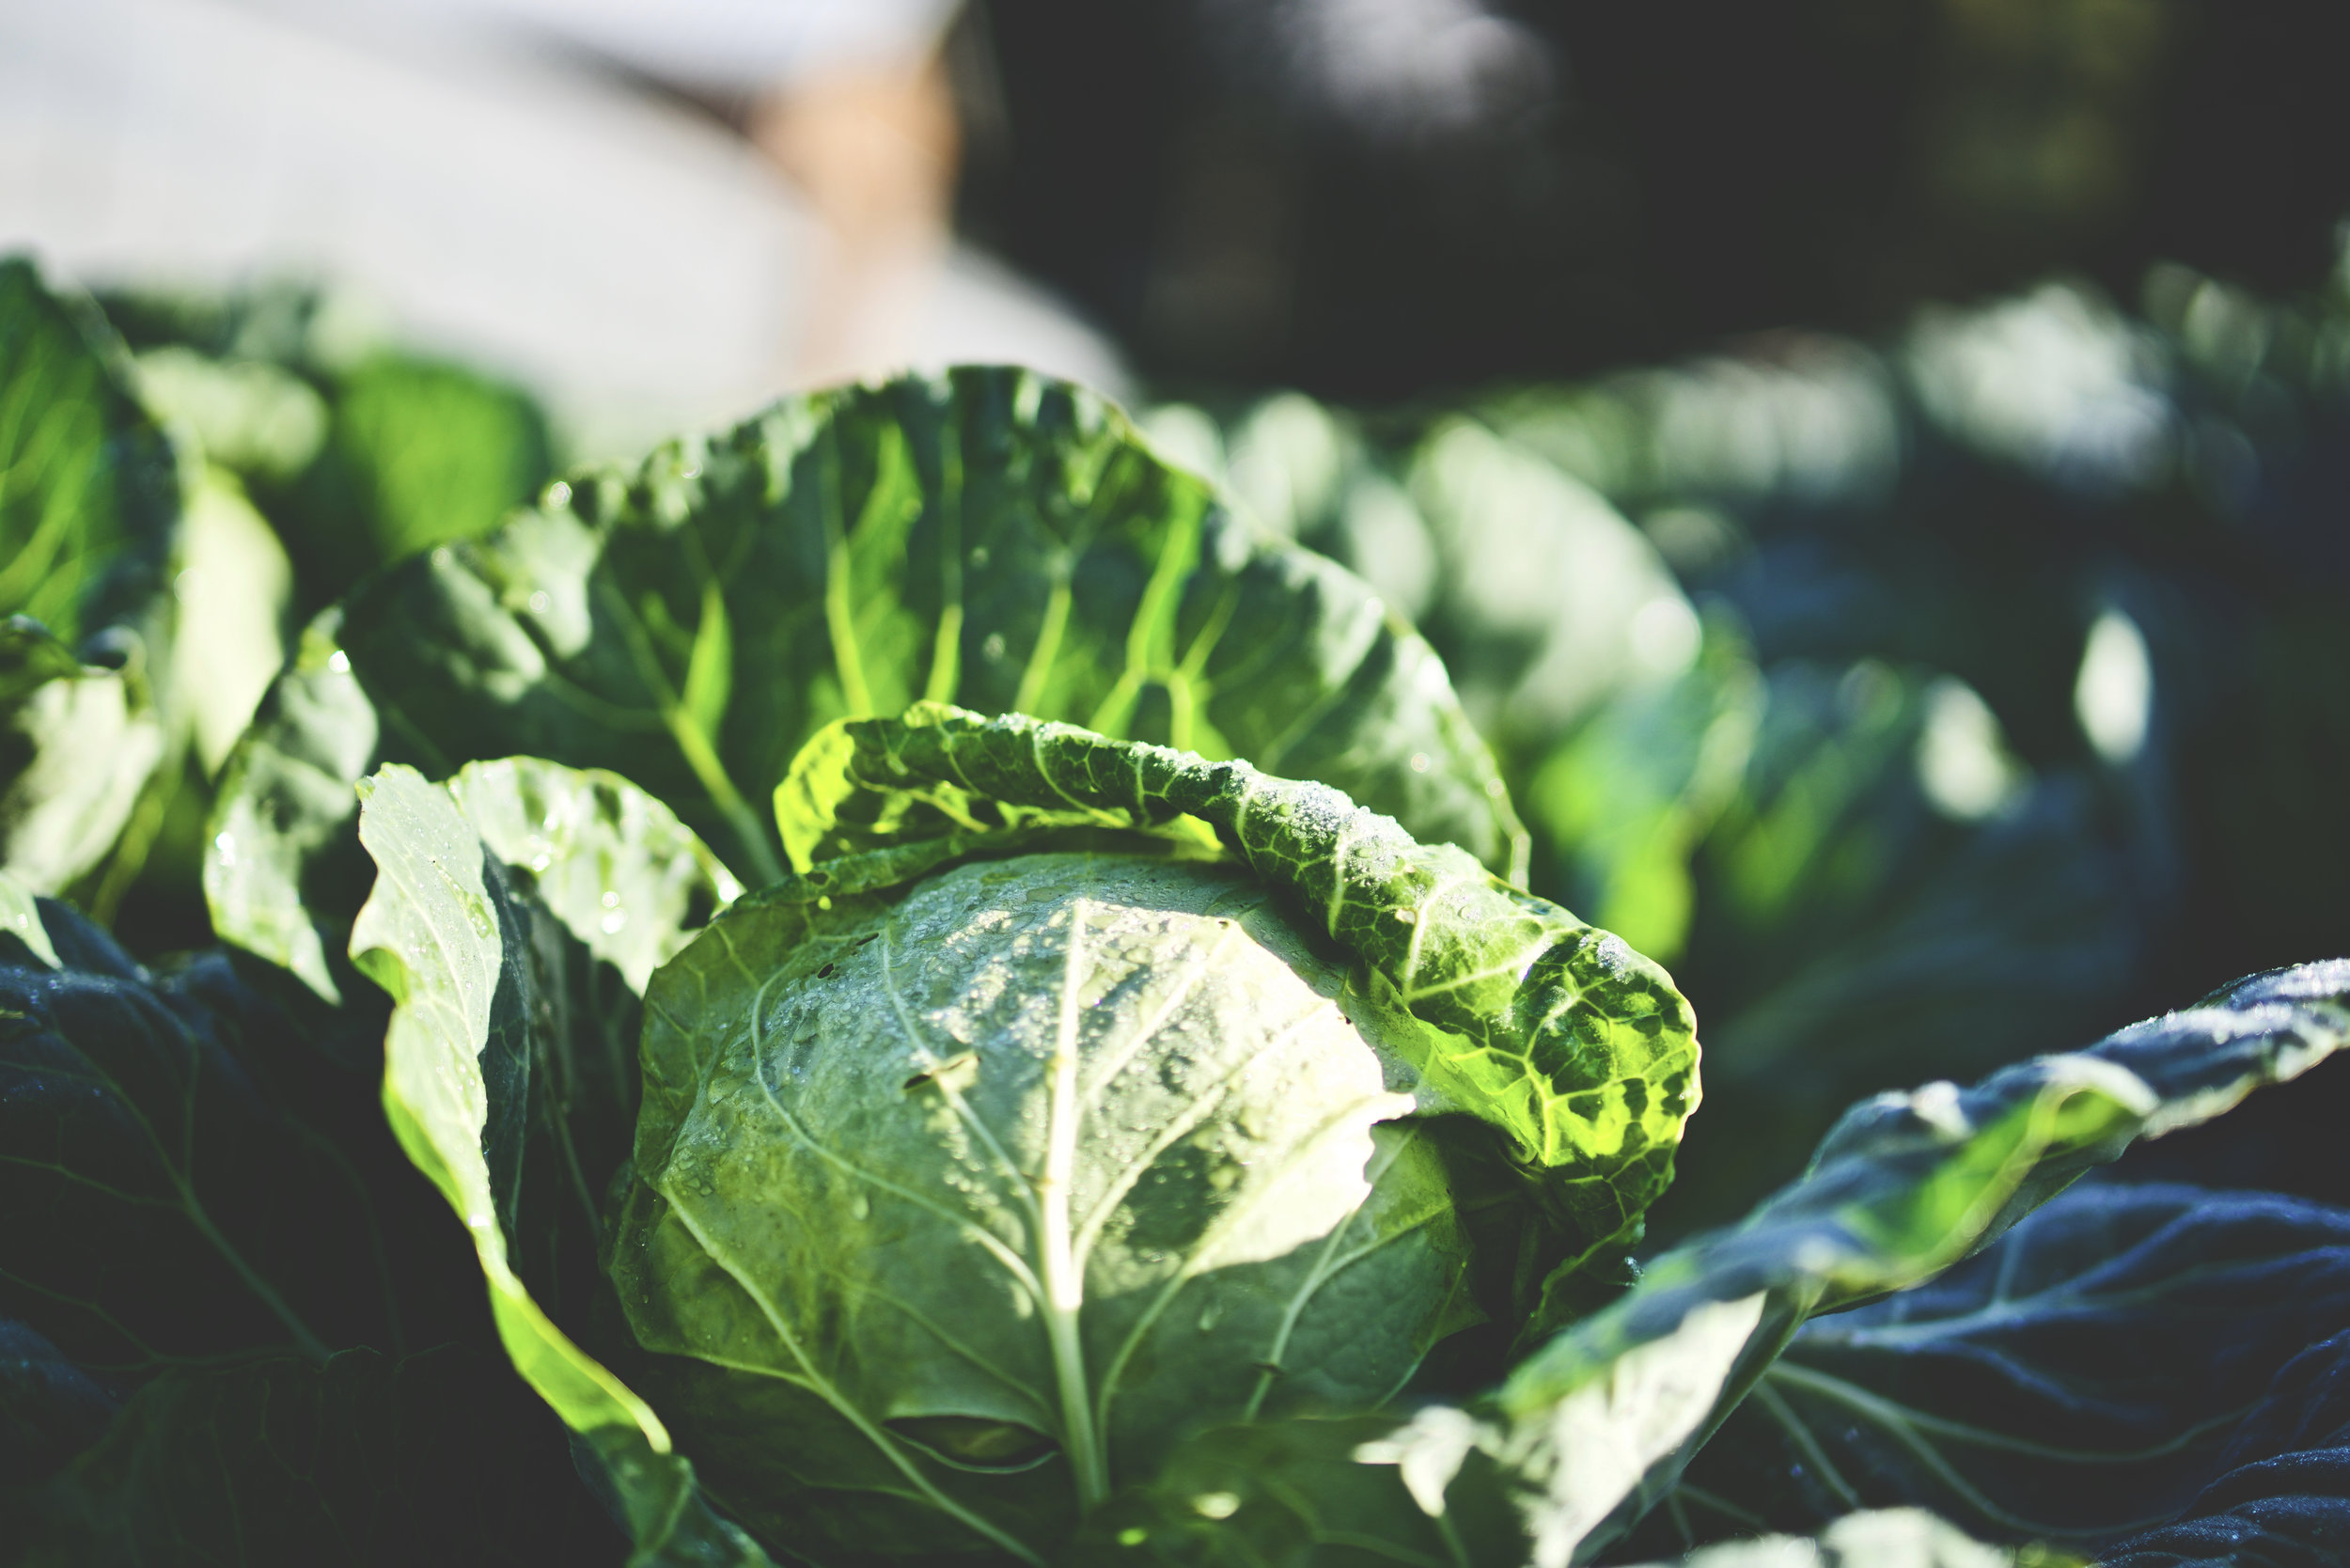 Cabbage - Cabbage is high in fiber, antioxidants, Vitamin C, and Vitamin K. The antioxidants found in cabbage have been shown to help reduce chronic inflammation.